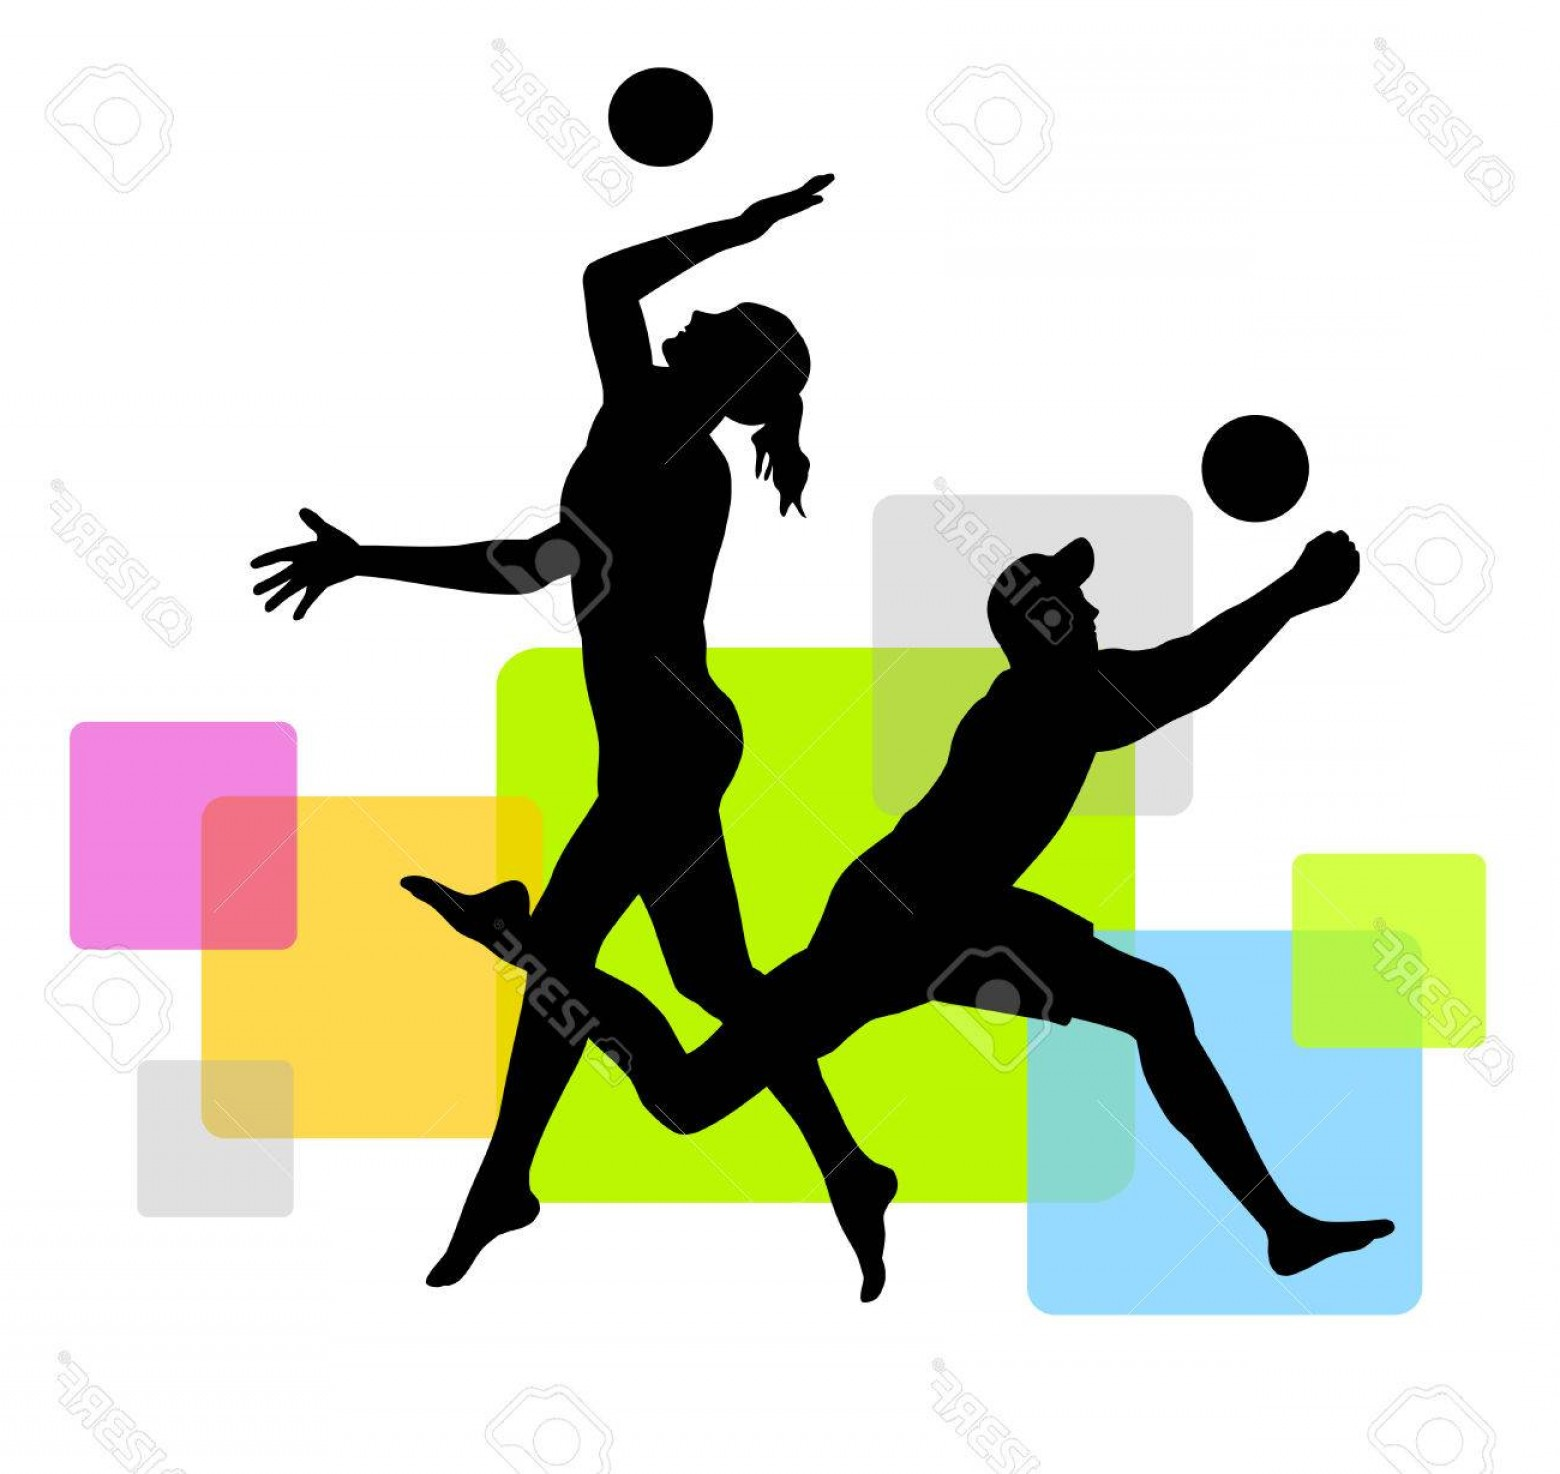 Volleyball Player Vector: Photostock Vector Beach Volleyball Players With Elements